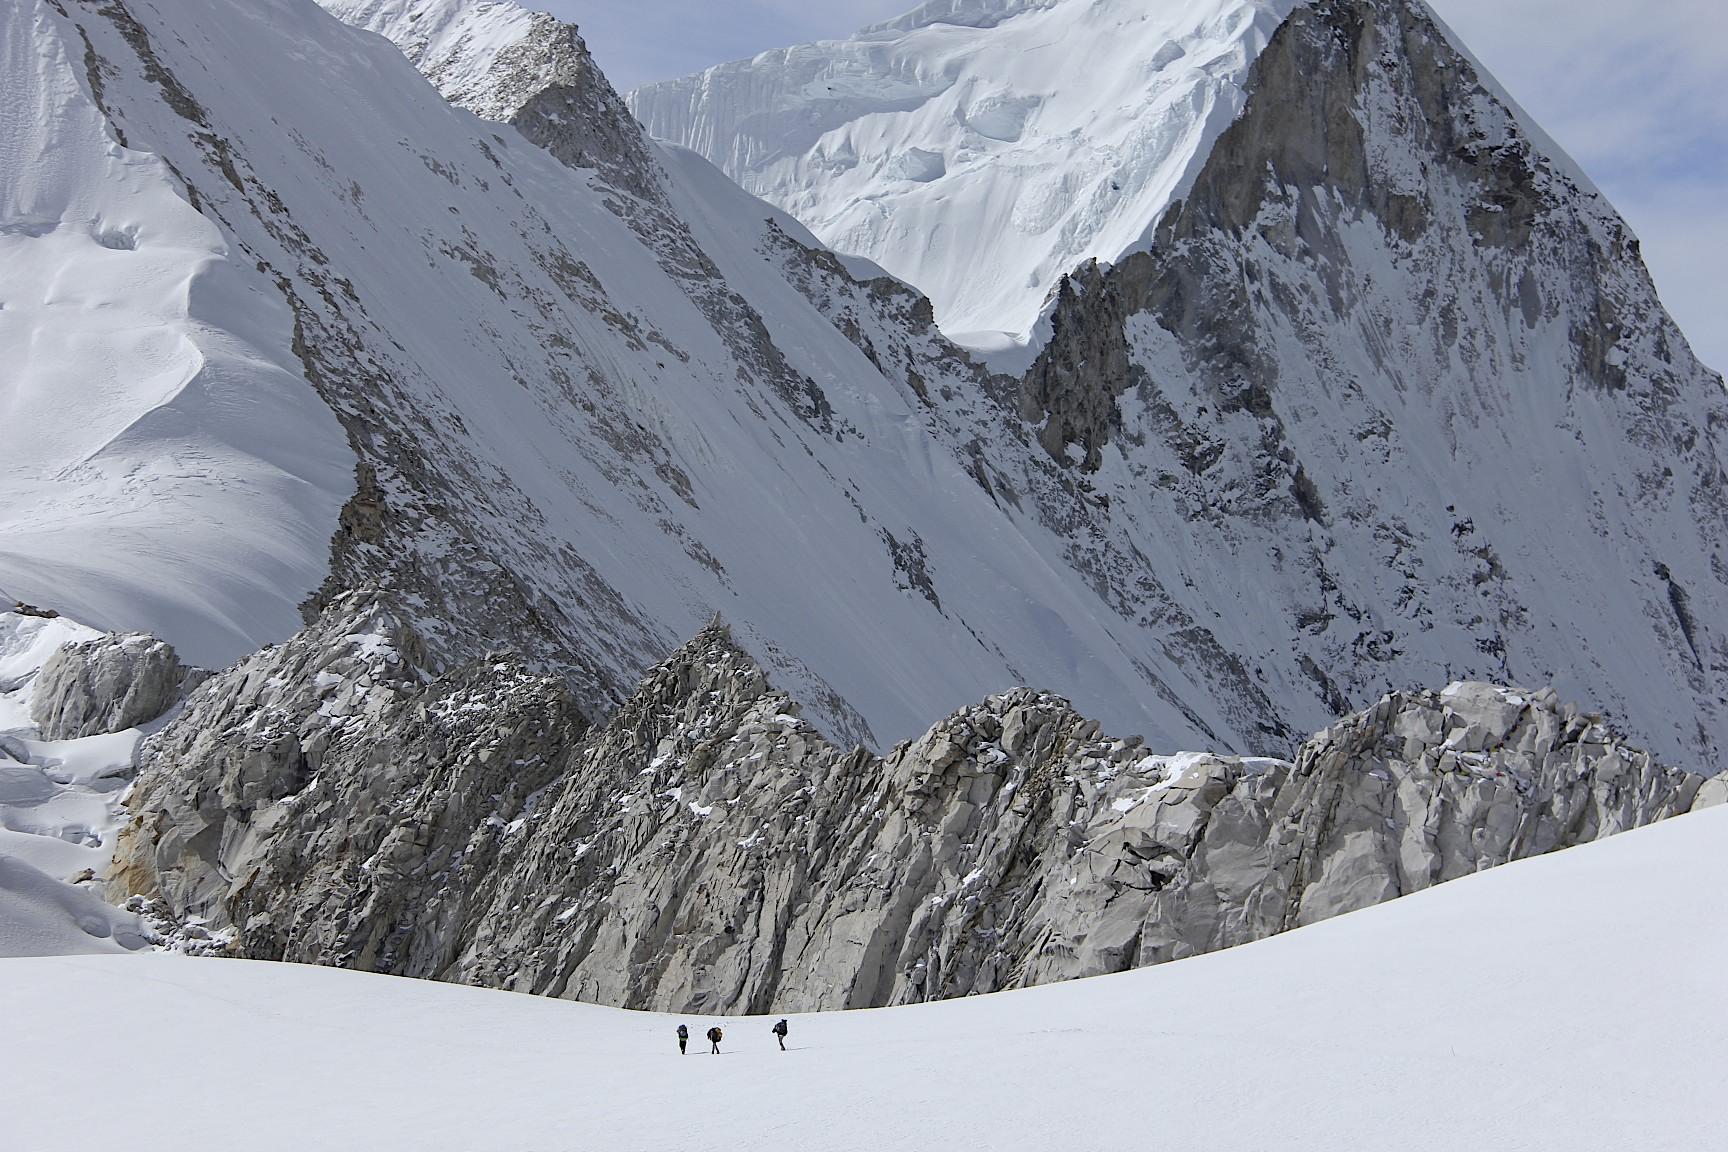 Approaching West Col